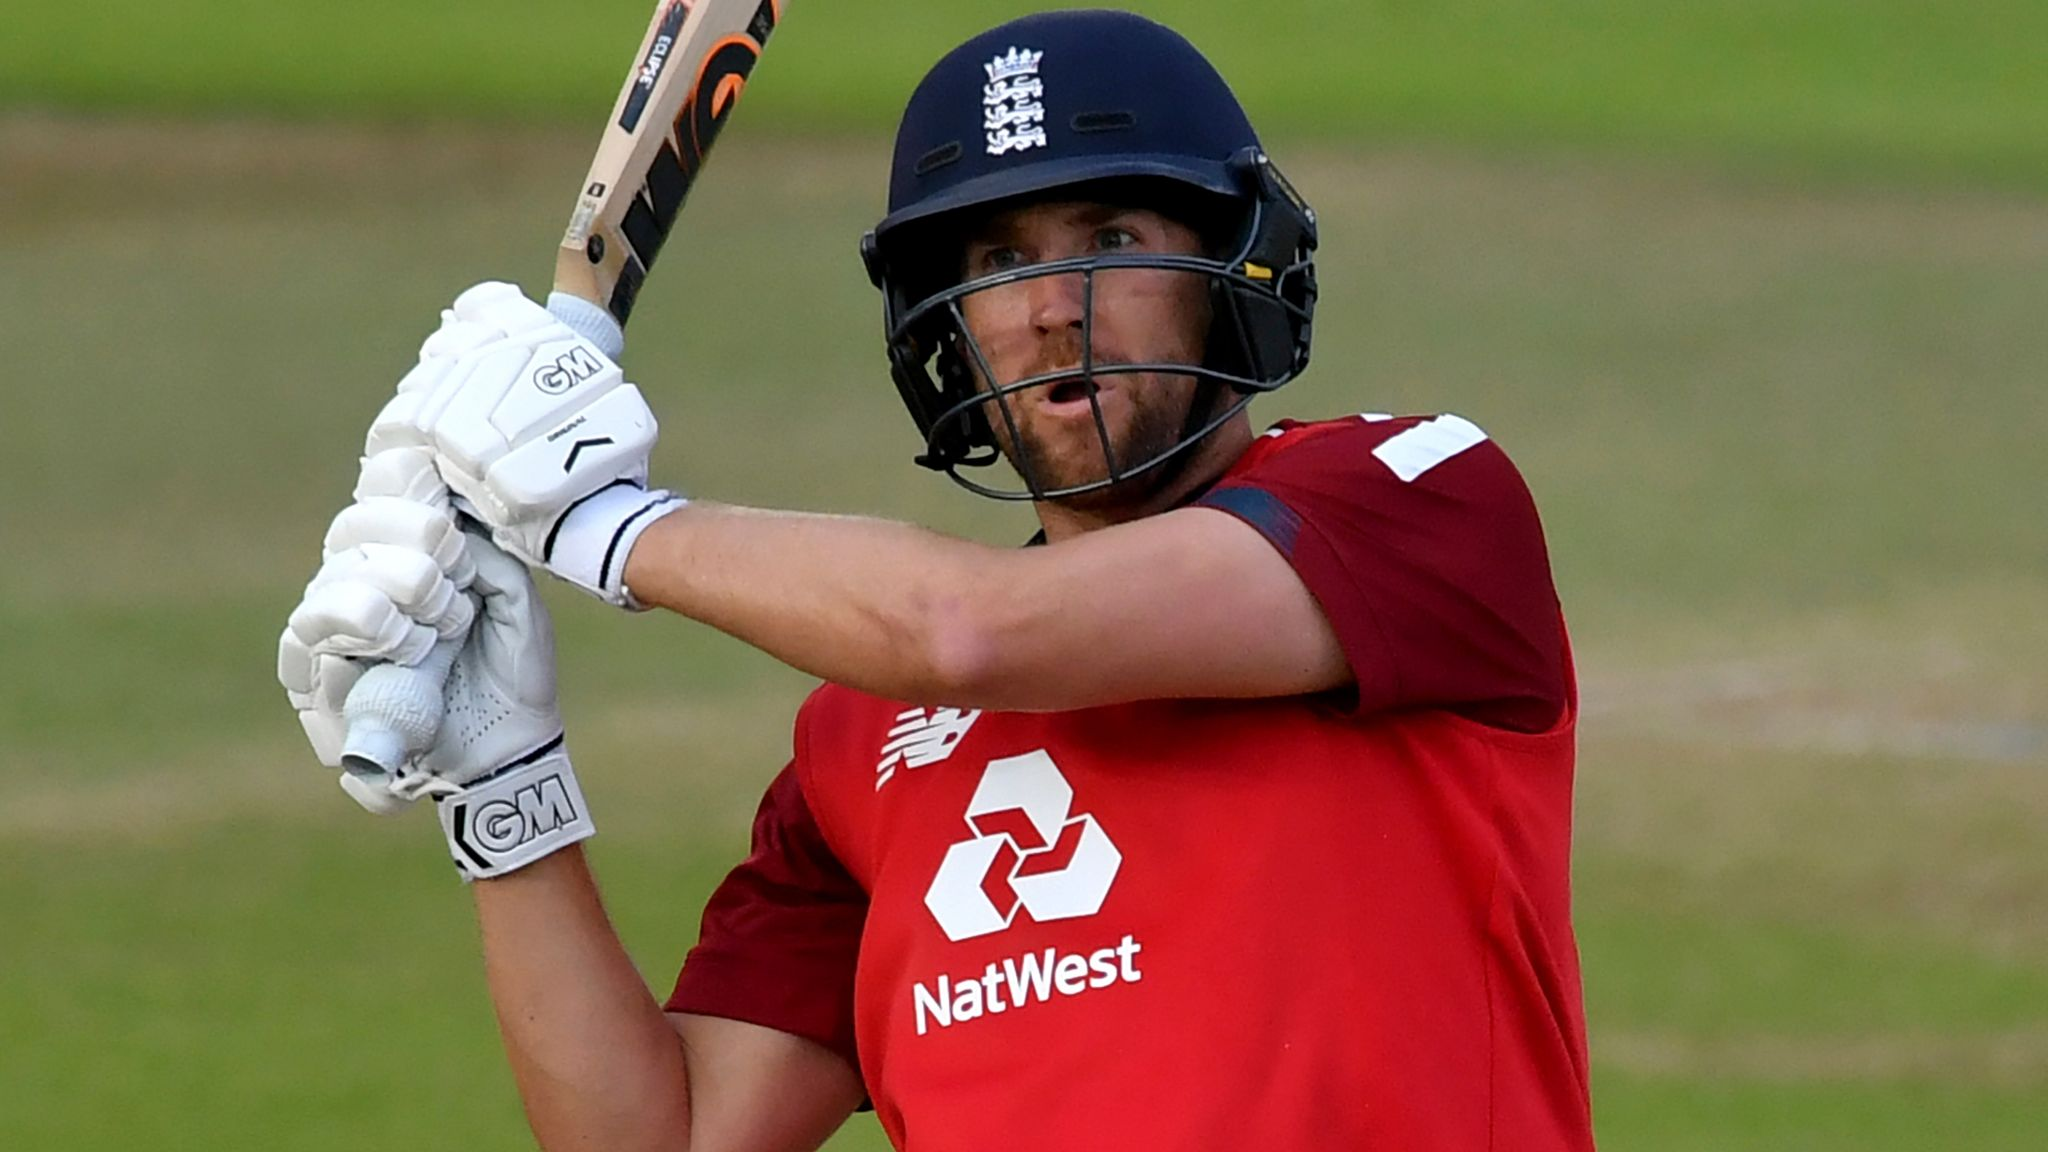 Dawid Malan leads 16-strong English contingent in IPL draft on Sky Sports |  Cricket News | Sky Sports